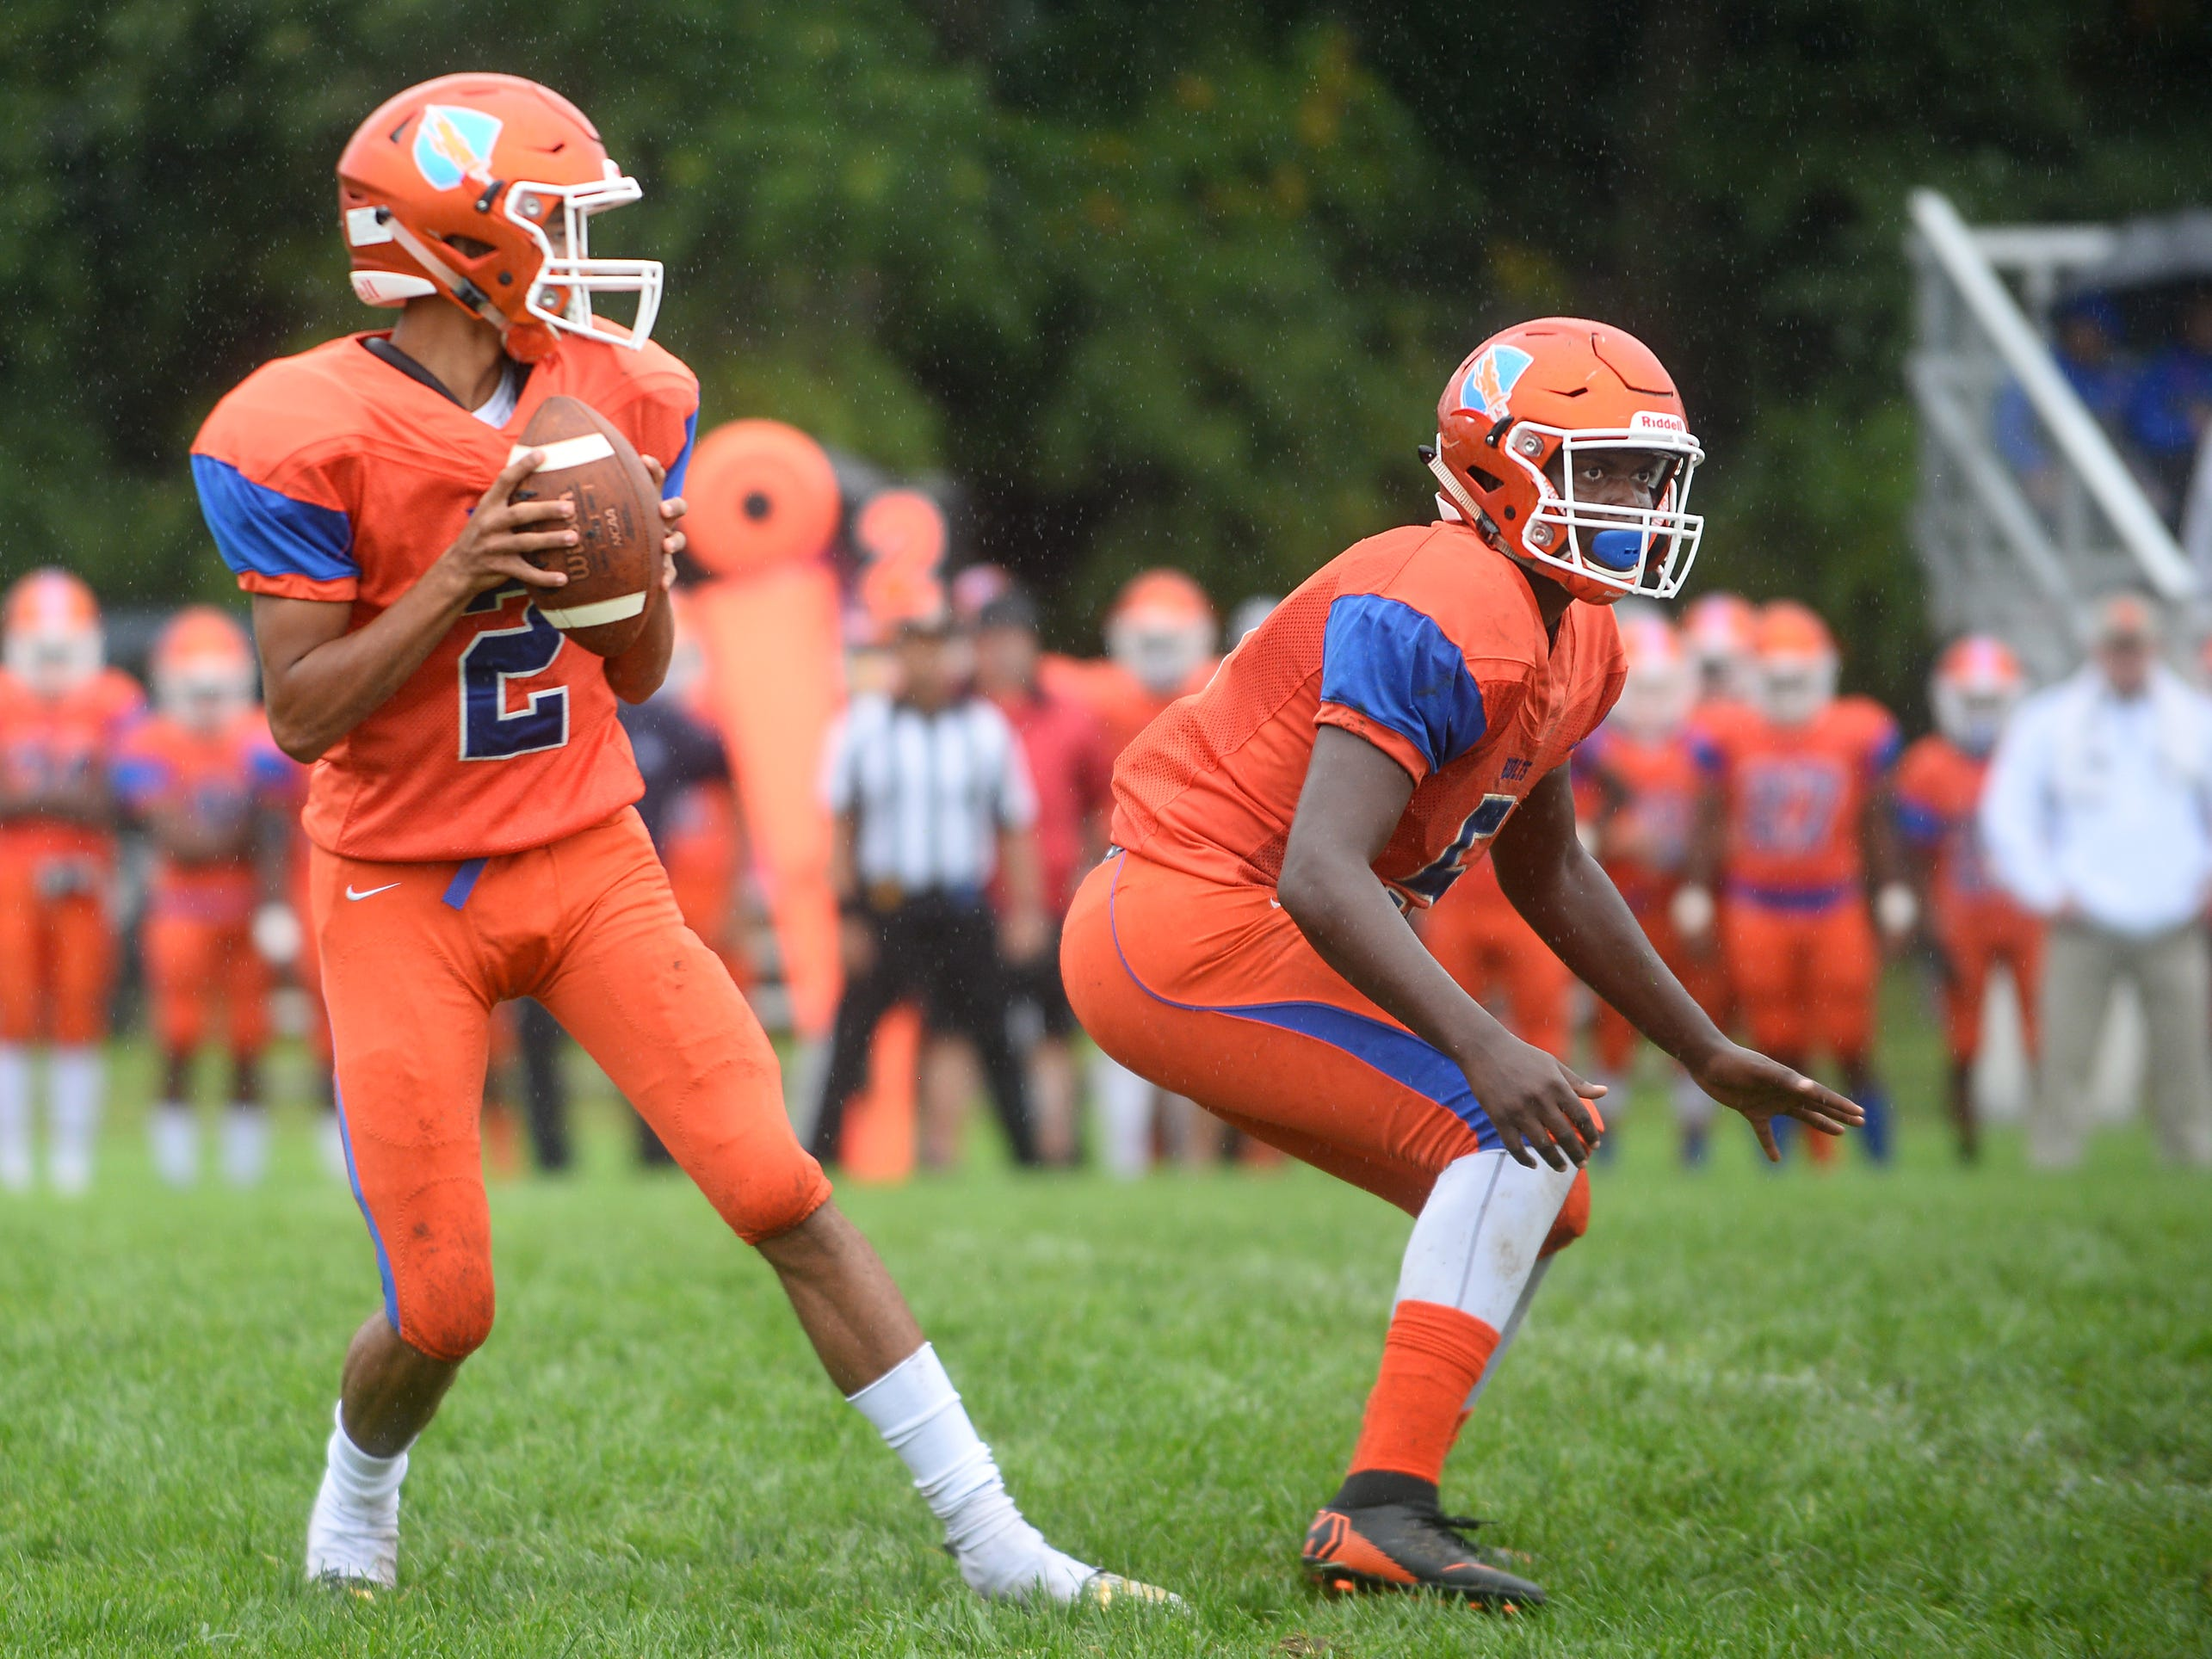 Millville QB, Eddie Jamison (2) checks down the field during a game against St. Joseph. The visiting Thunderbolts lost the outing to the Wildcats in Hammonton on Saturday, September 8.